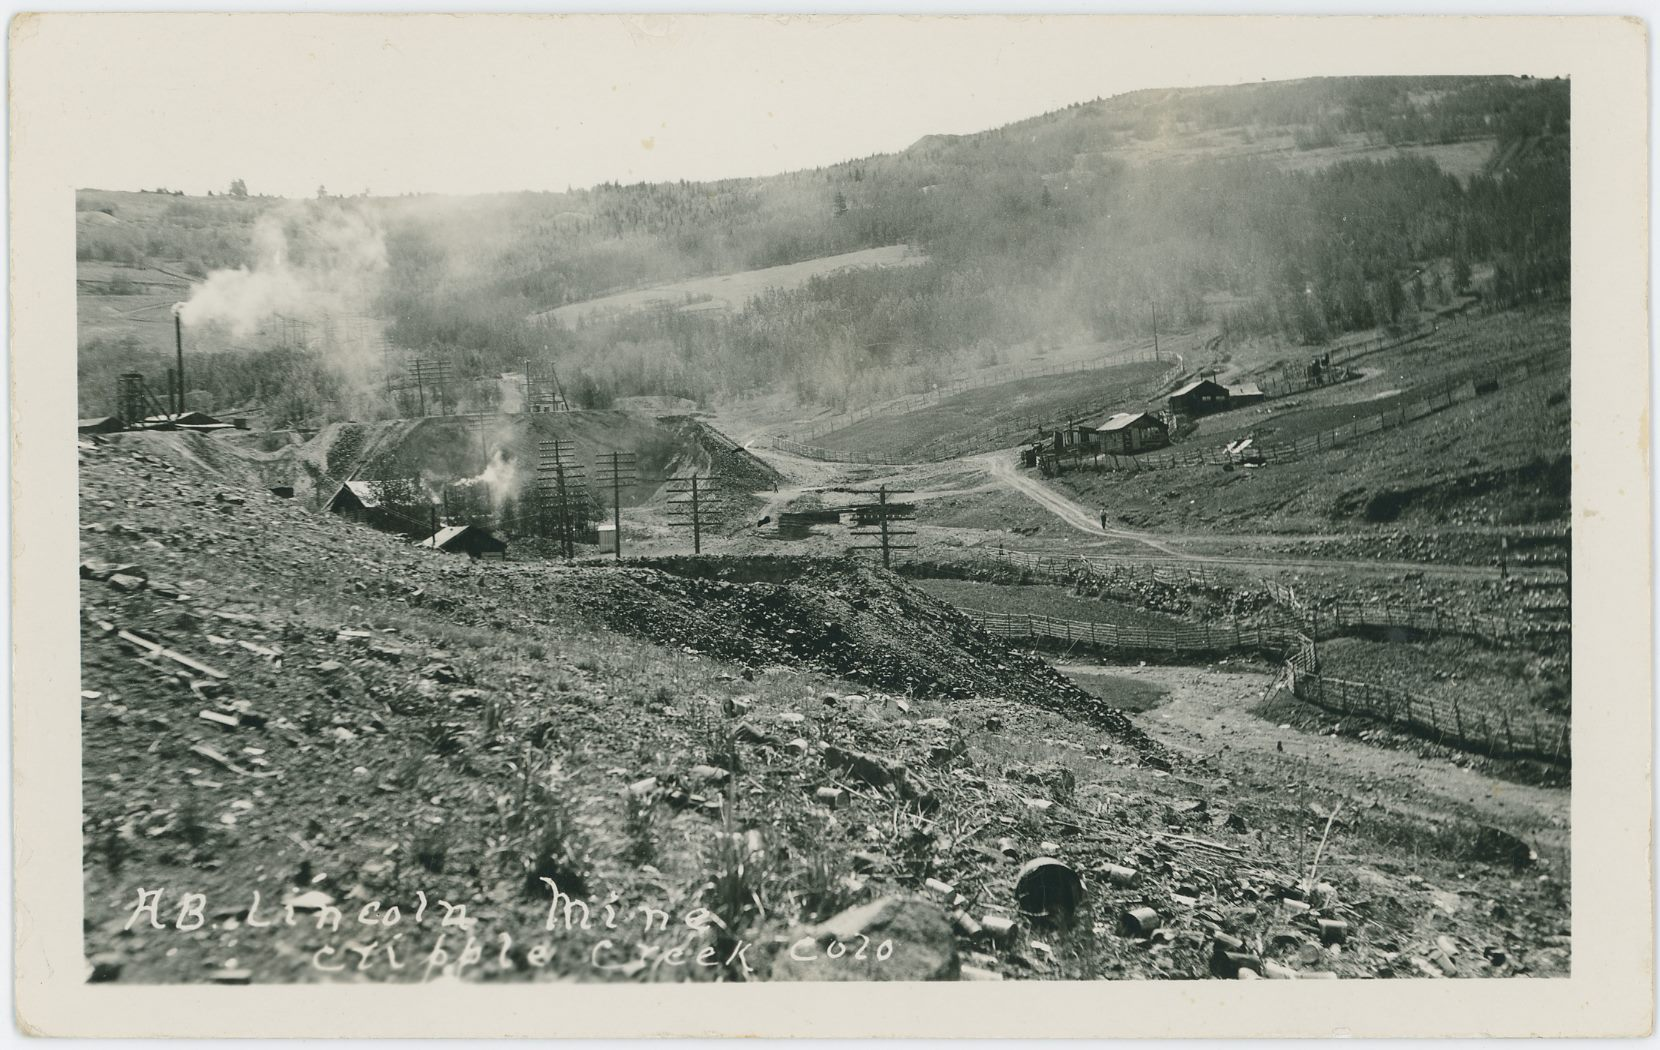 While this card is not marked, the Text Title has same type of writing as another card with the Young name on it, so I assume it is taken by the photographer named Young. The Scene is in lower Poverty Gulch, looking towards Gold Hill in the background, with the large dump and operations of the Abe Lincoln Mine seen at the edge of the left-hand side, going into the image towards right. The Dump with a hole in the foreground I can't say at this moment in time [13.06.2017] which claim it was located on, so sorry I can't help with that. What I can say is that I assume this view to be in the 1930's or so, and there are seen two switch-stands about middle top/down on the right-half-part of this view, where I think the one closest to the right-hand edge is the one for a siding at the M.T. Wye below the old Midland Sampler site, while the one to the left is the one for the upper spur that went to the top side of the same Sampler. There also appears to have possible been a loading dock of woods at the end of the spur near the end of the mine dumps of the Abe Lincoln.